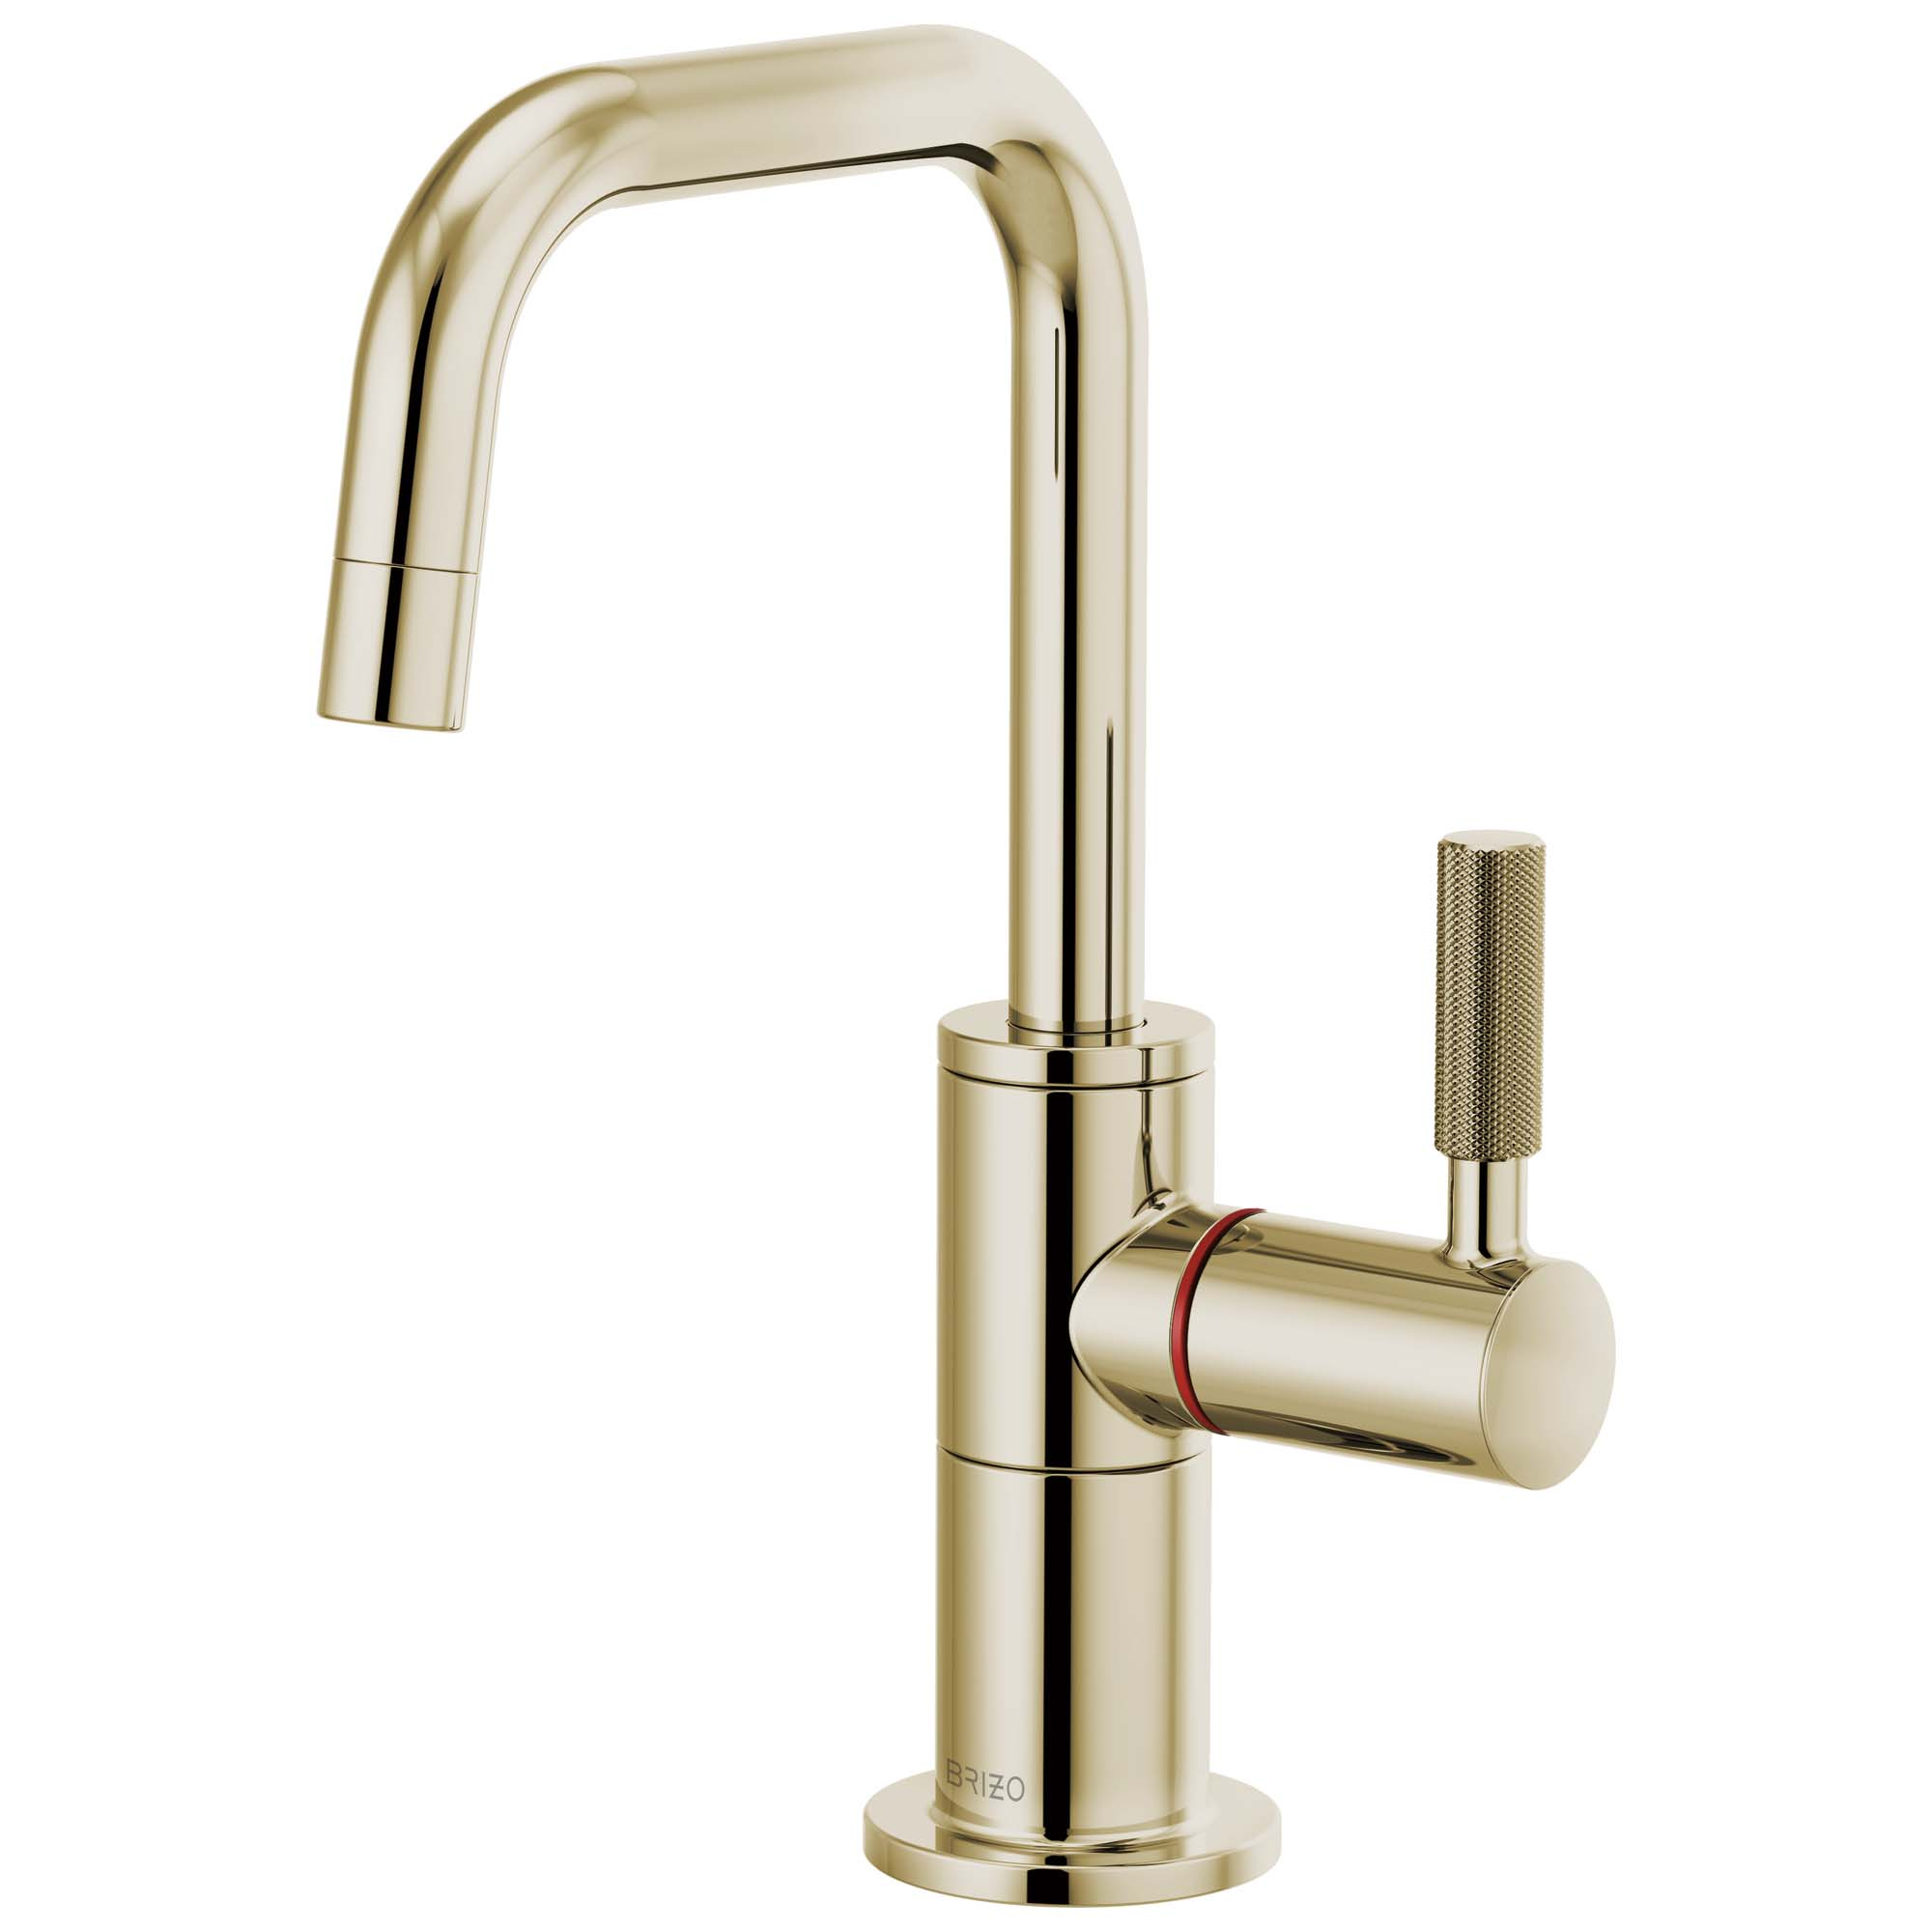 Brizo 61353LF-H-PN Litze Instant Hot Faucet with Square Spout and Knurled Handle - Polished Nickel